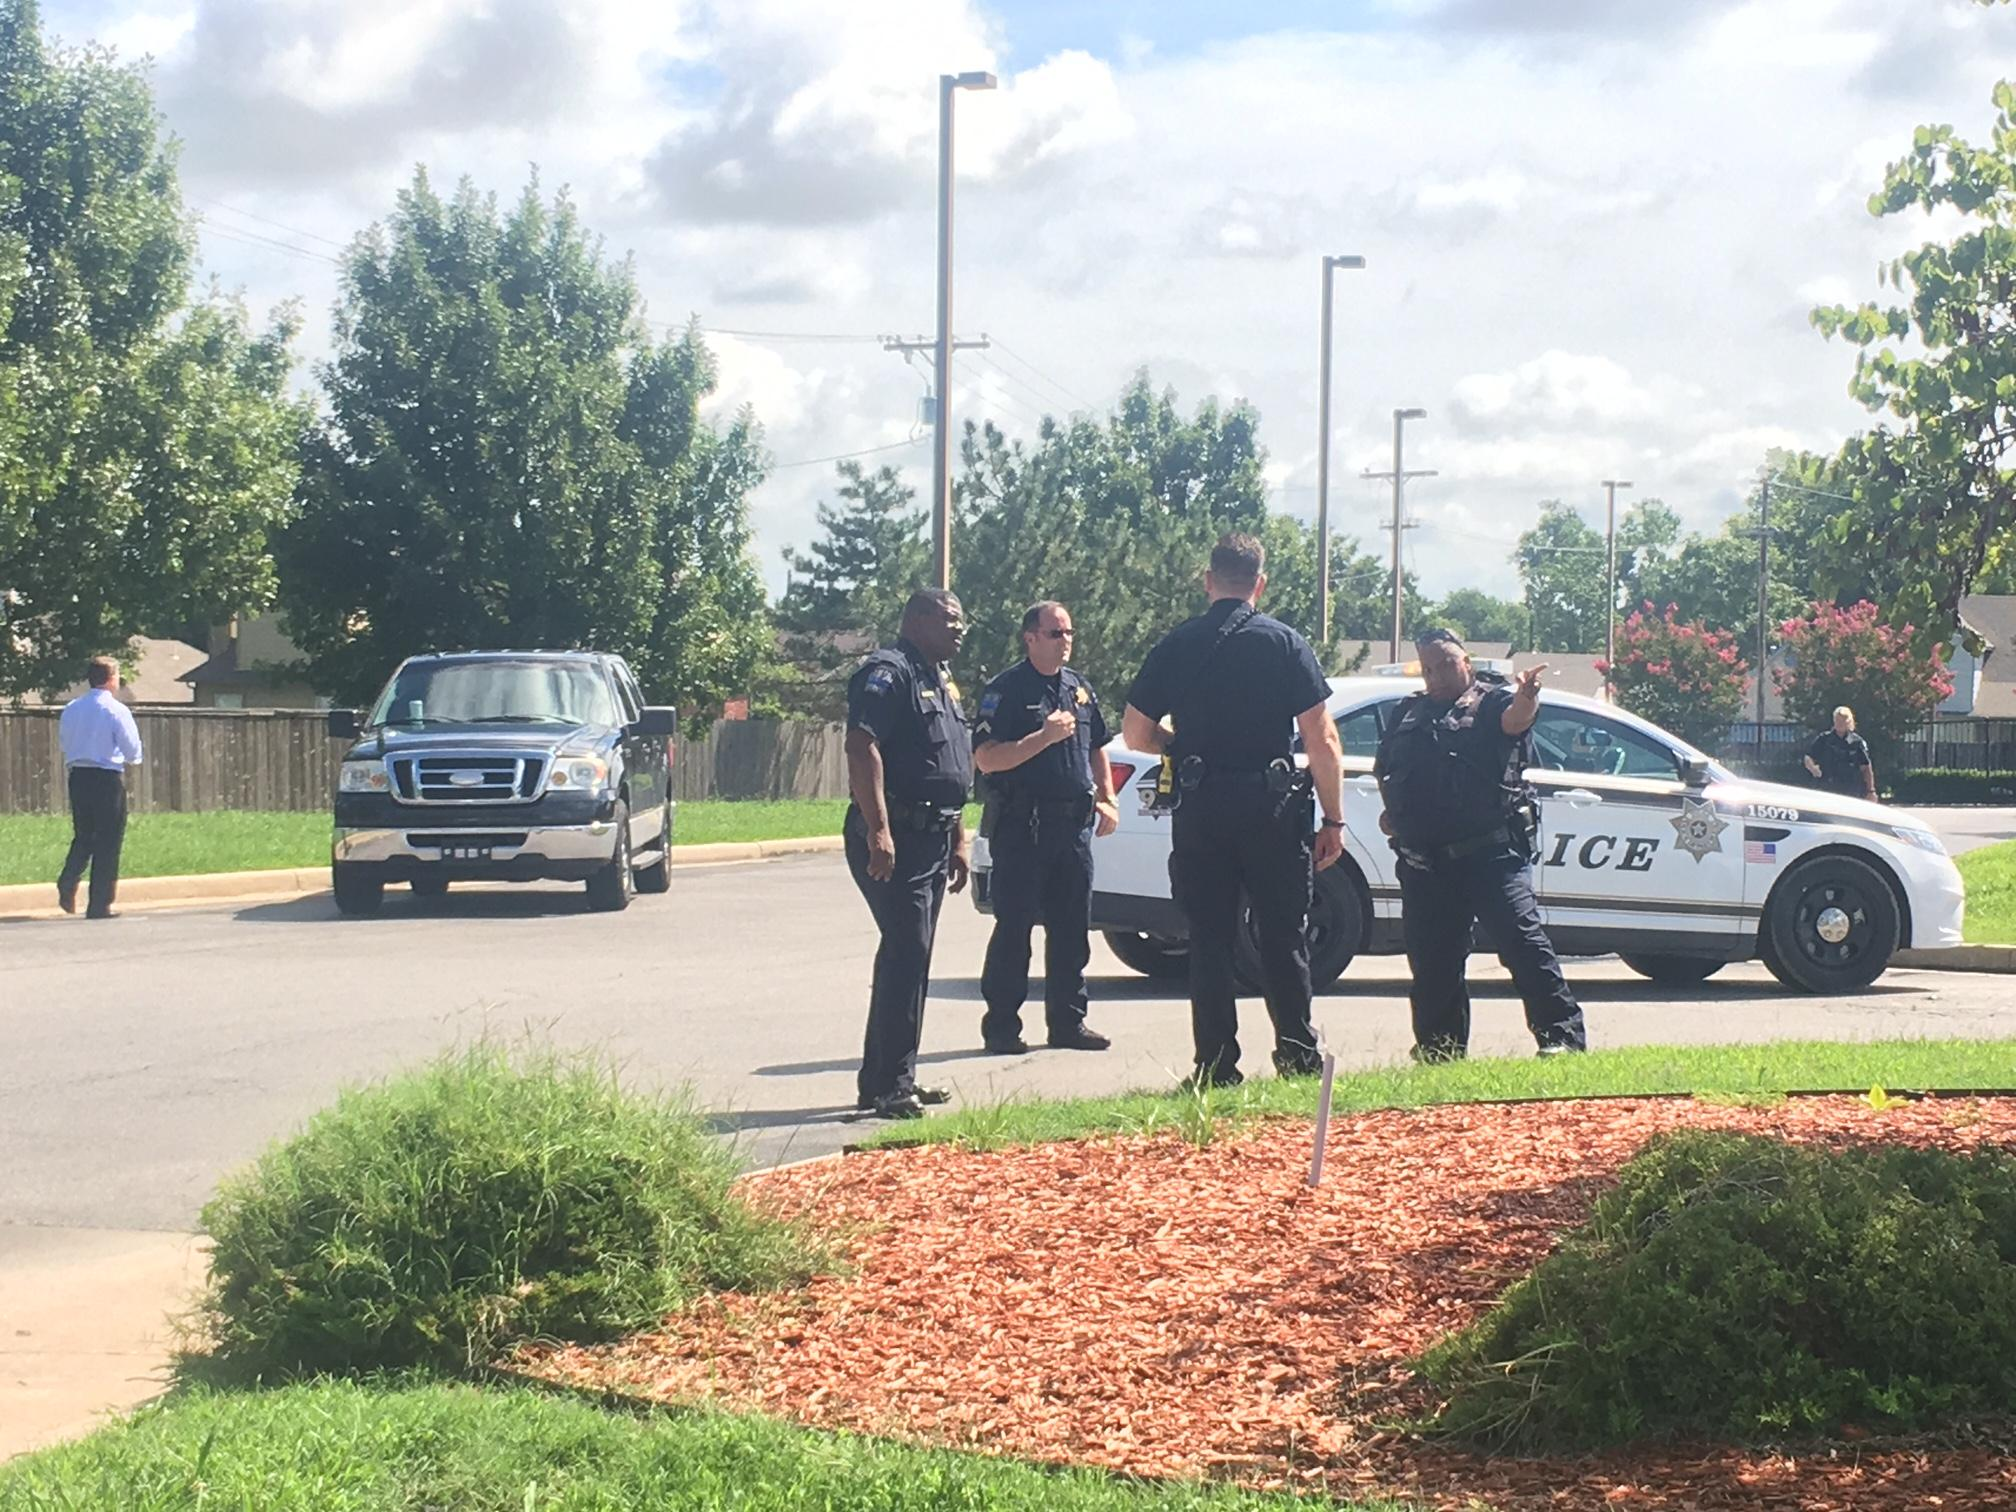 Officers responded to the Bank of America near M.L.K. Jr. Boulevard and Pine around 11 a.m. Thursday. (KTUL)